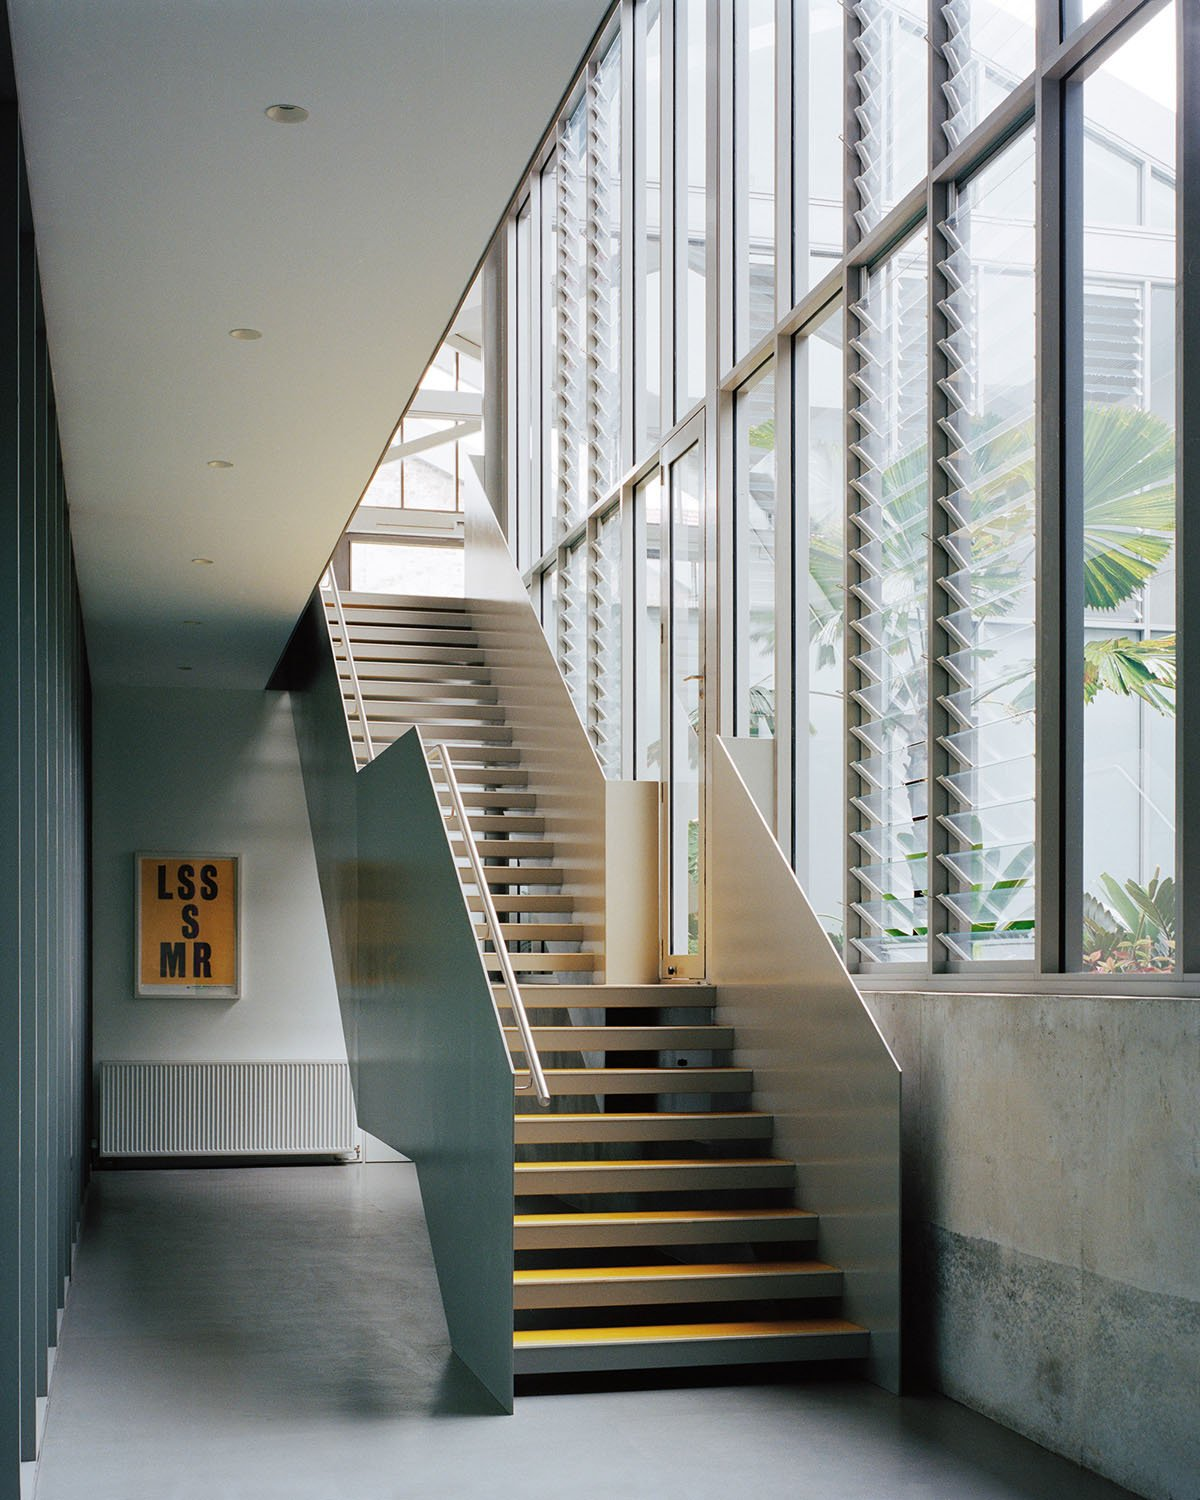 Entry hall and stair Rory Gardiner